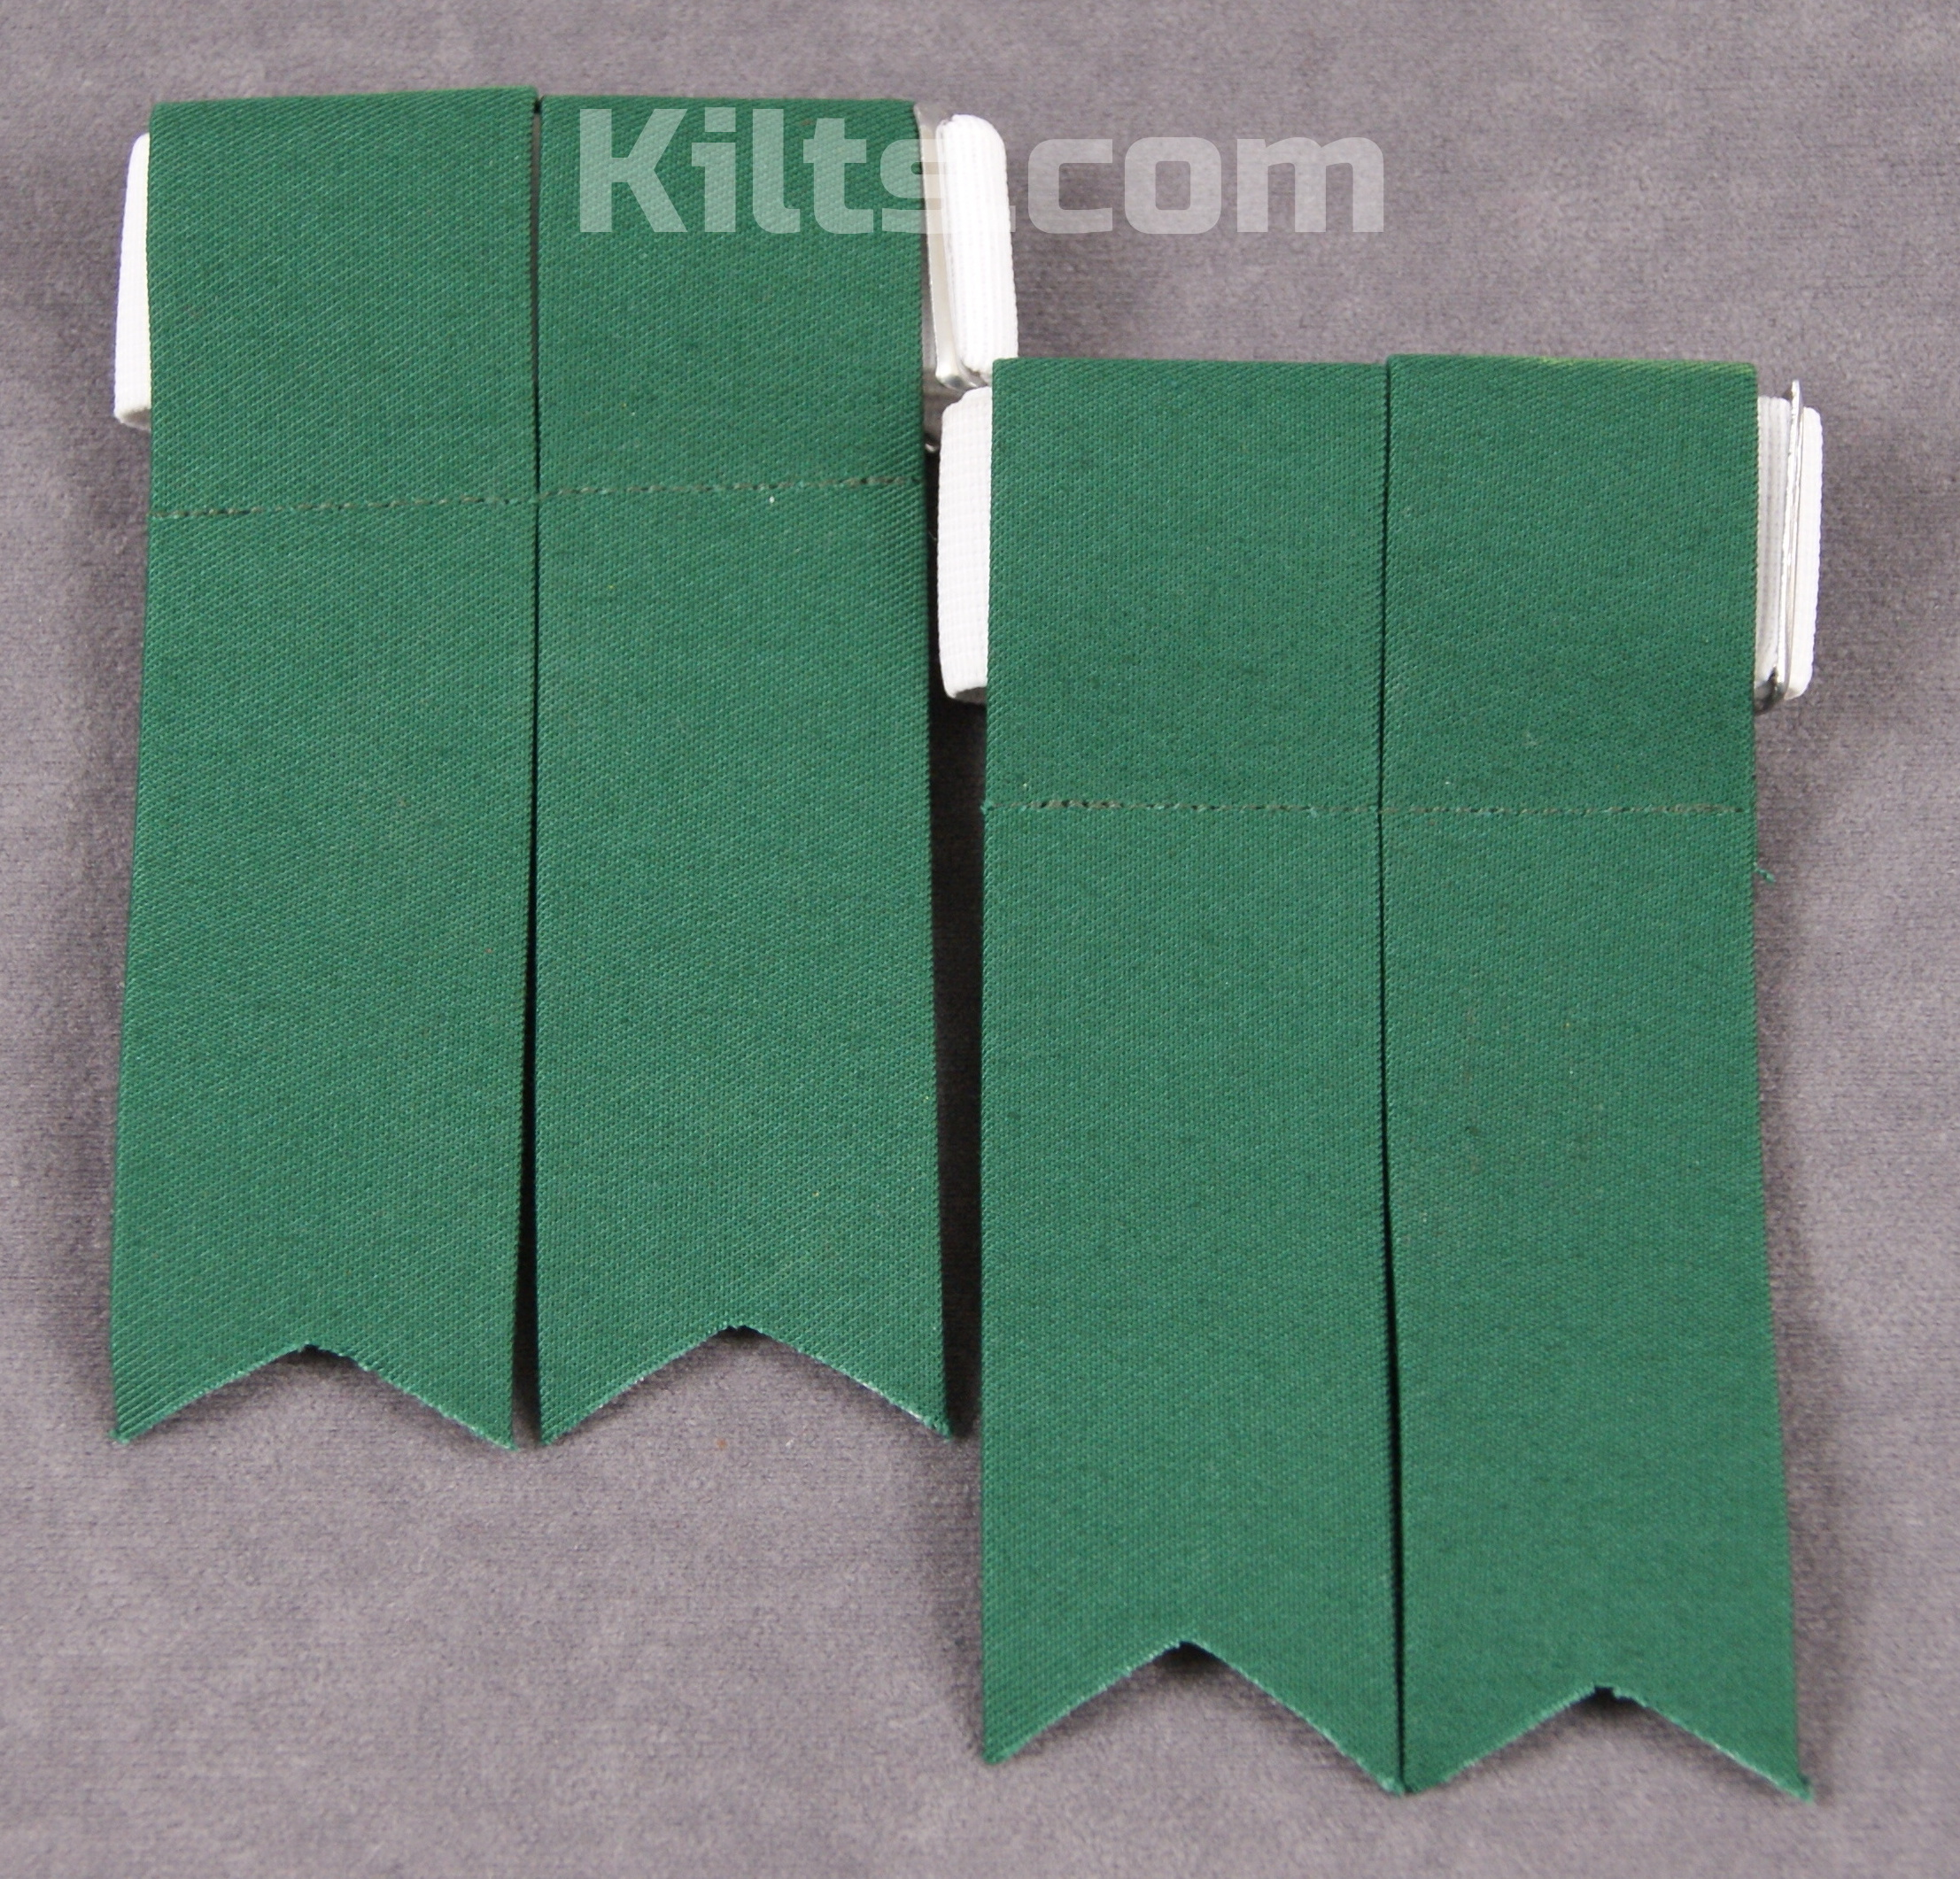 Check out our Standard Kilt Sock Flashes for sale in Green.